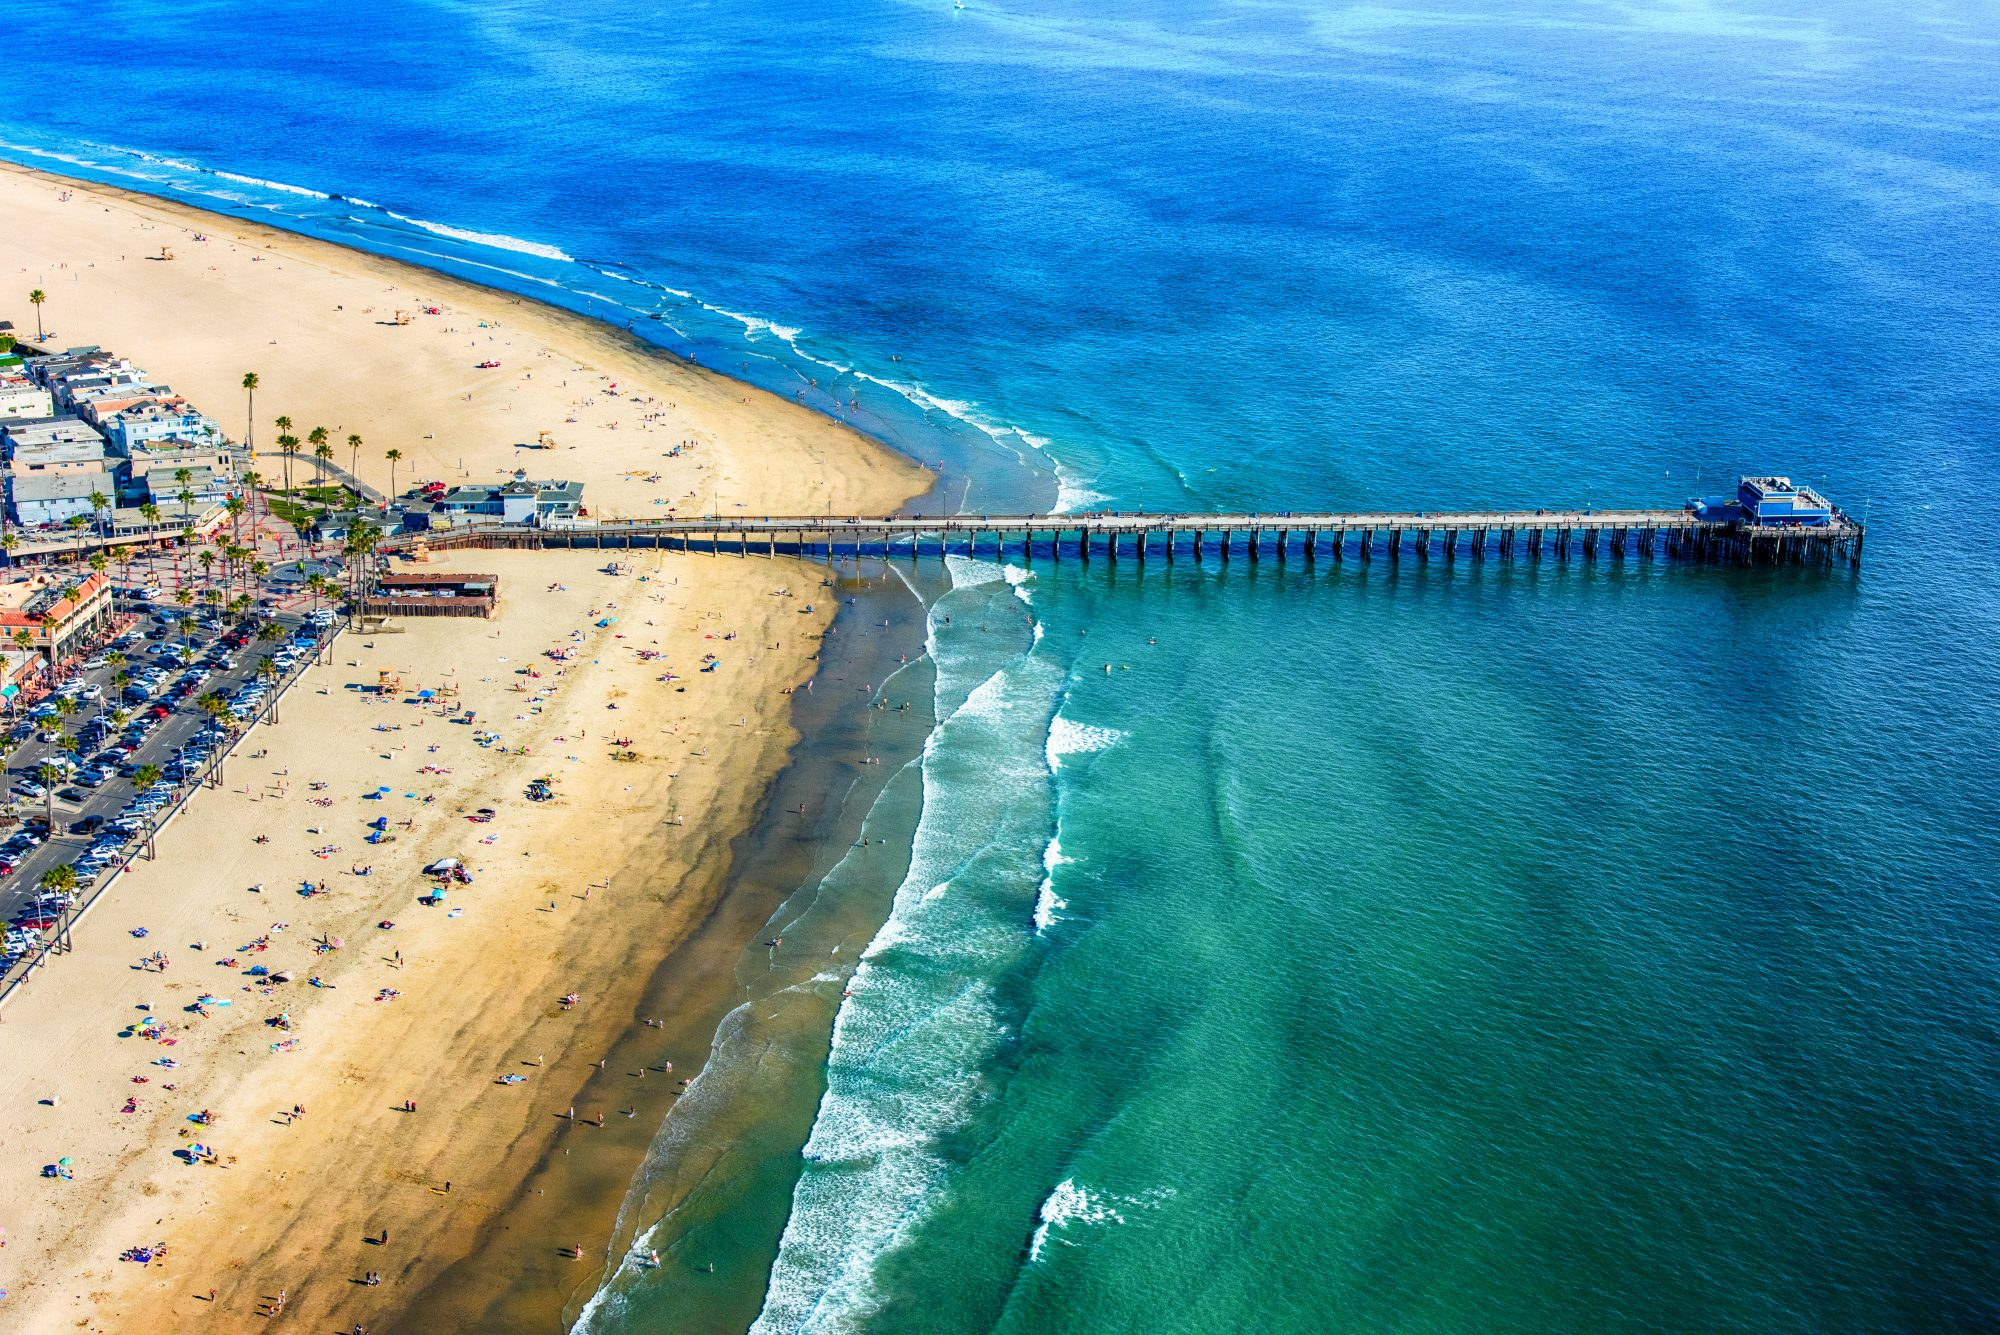 The pier at Newport Beach in Orange County, California shot from an altitude of about 1500 feet.